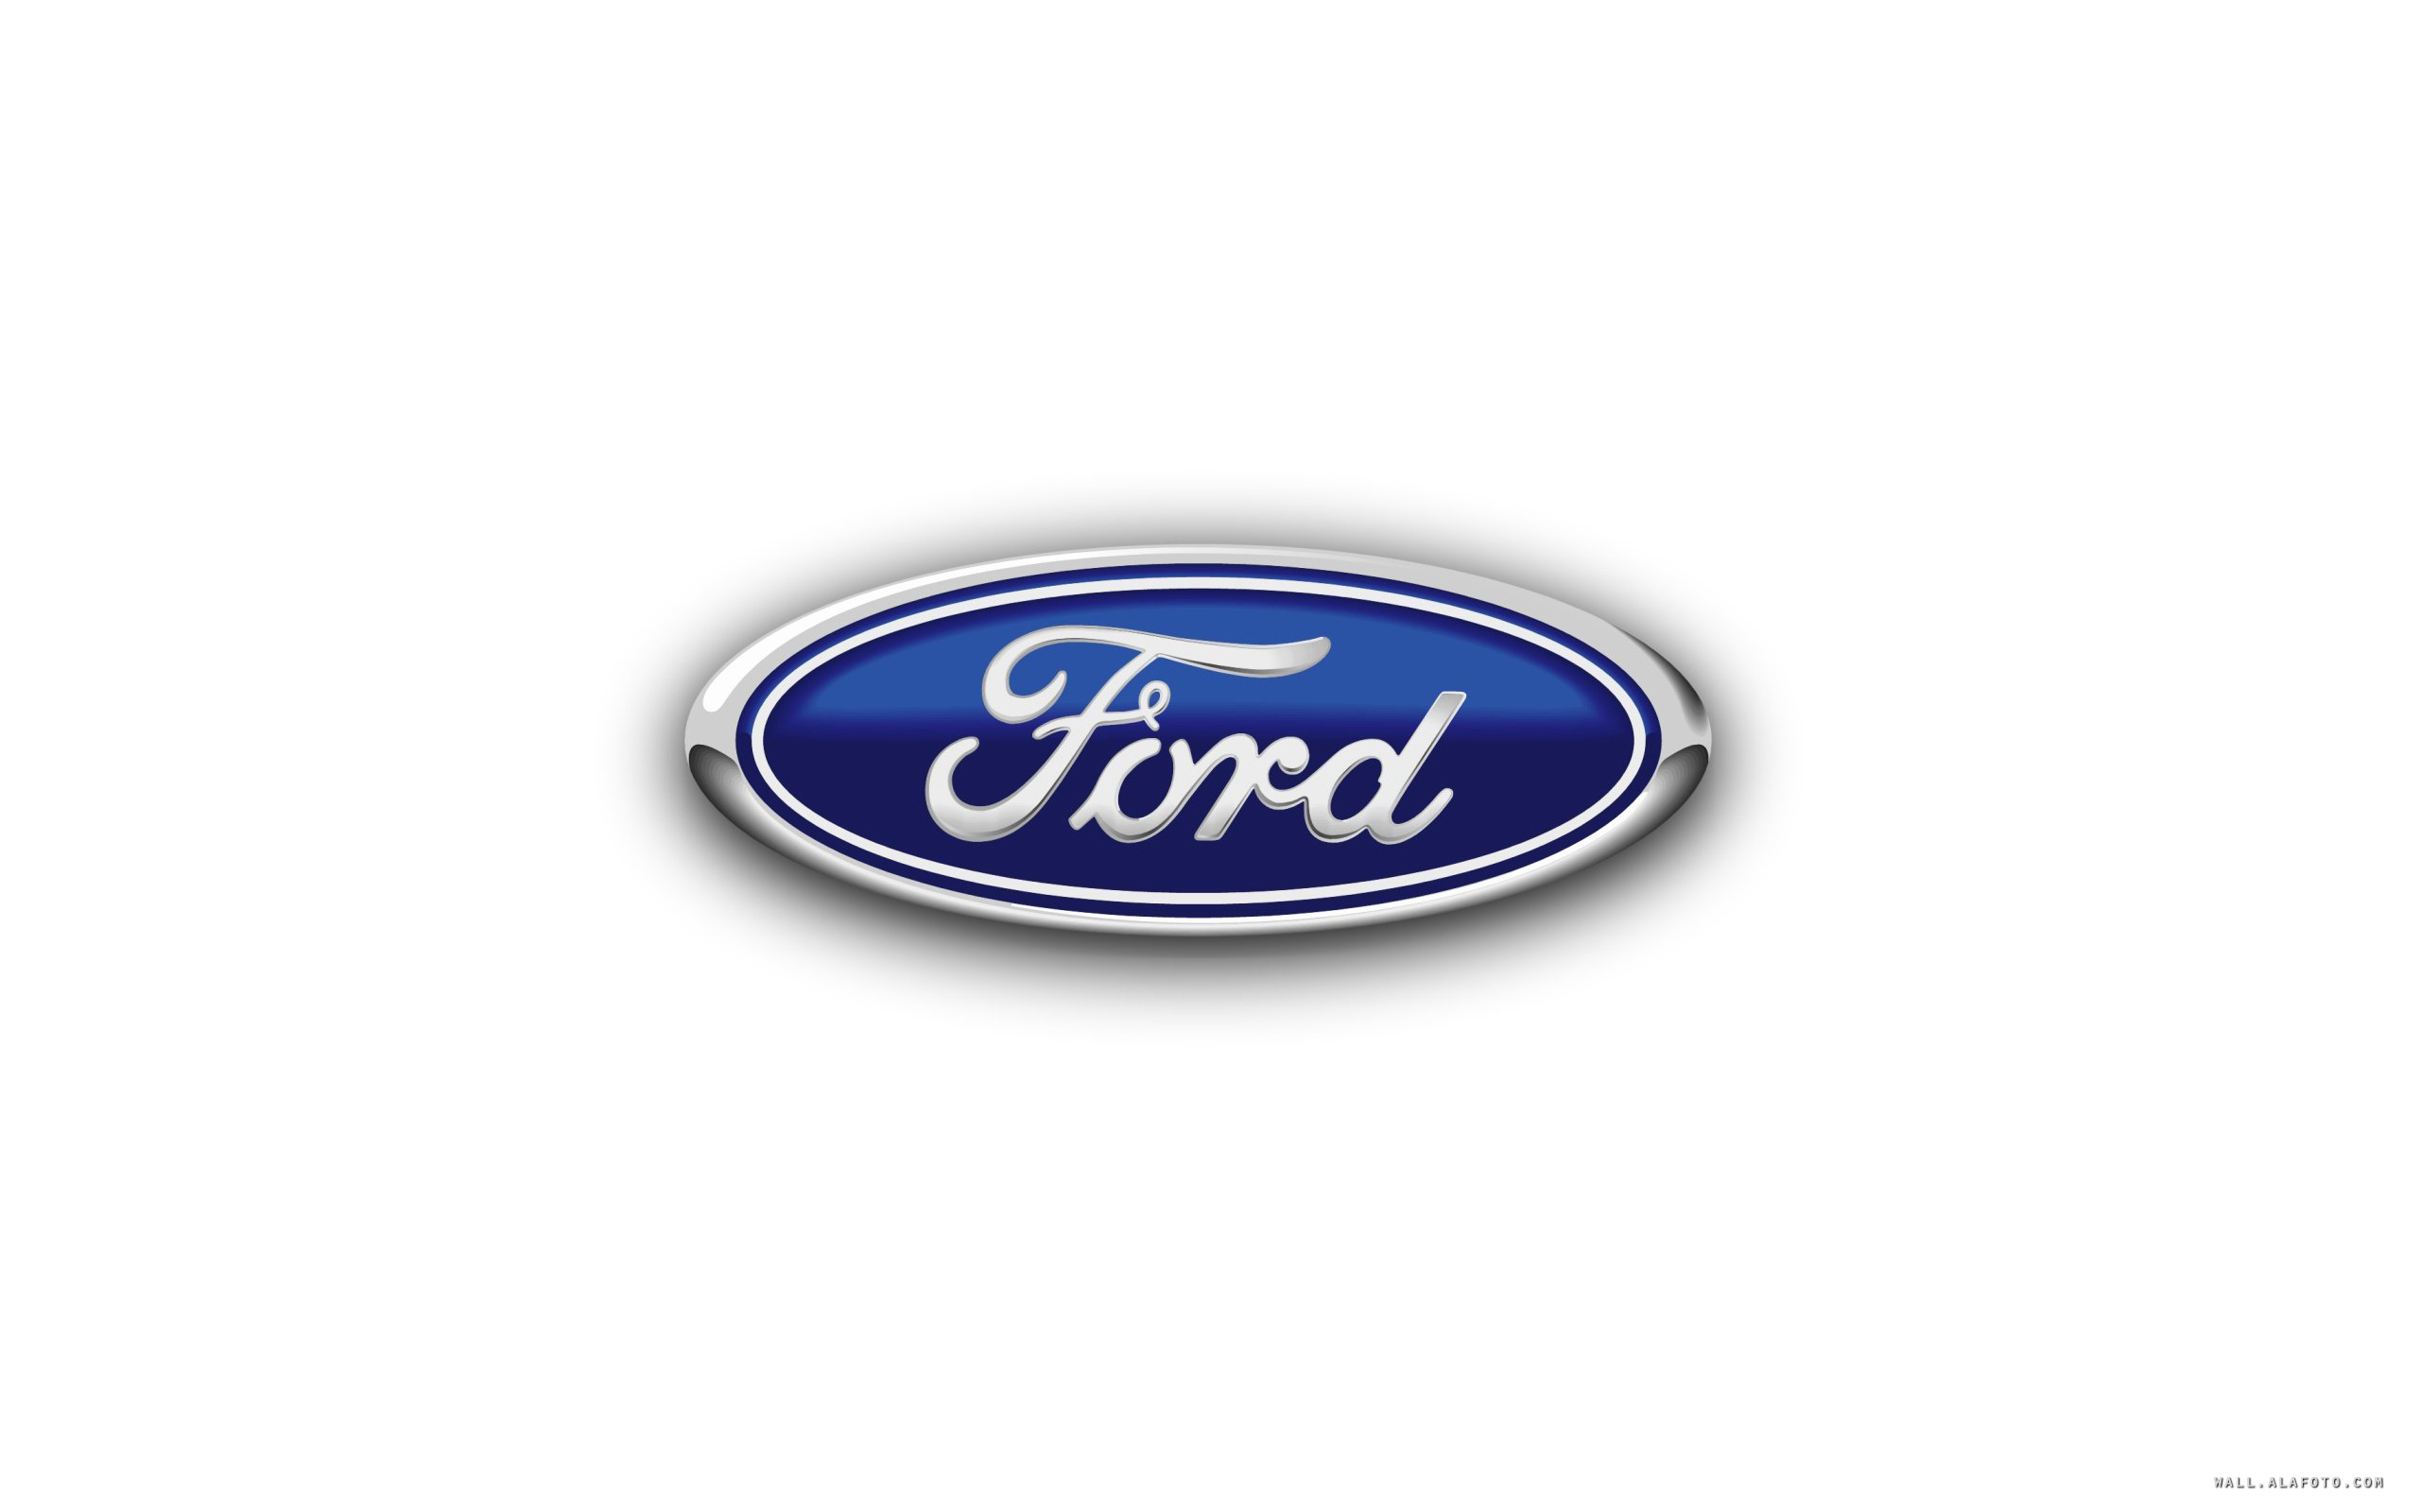 Ford Logo Wallpaper Wallpapersafari